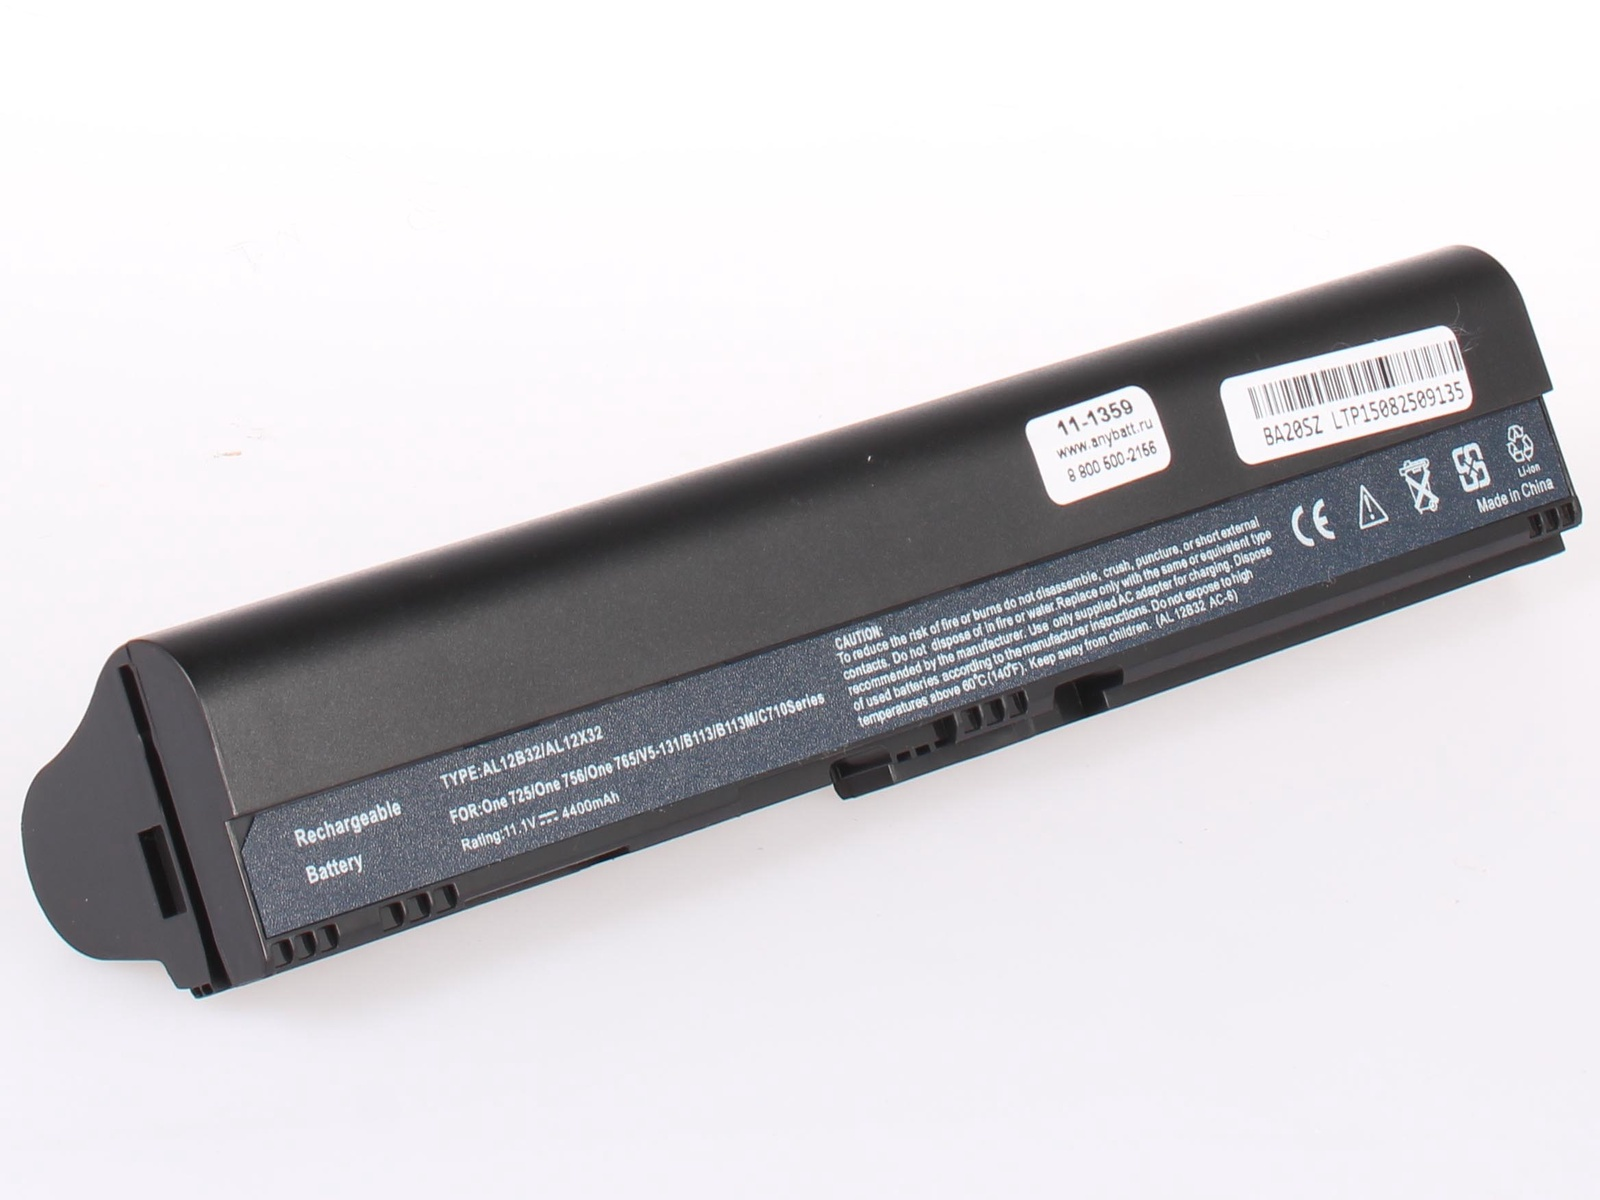 Аккумулятор для ноутбука AnyBatt для Acer Aspire V5-131-10074G50akk, Aspire V5-471P-323b4G50Ma, Aspire V5-471PG-33224G50Mass, Aspire One 756-887B1ss, Aspire V5-571P-53314G50Mass, Aspire One 756-887B1kk, Aspire V5 Touch 571PG free shipping for acer aspire v5 571 v5 571p v5 571pgb v5 531pg ms2361 assembly touch screen and display not with frame